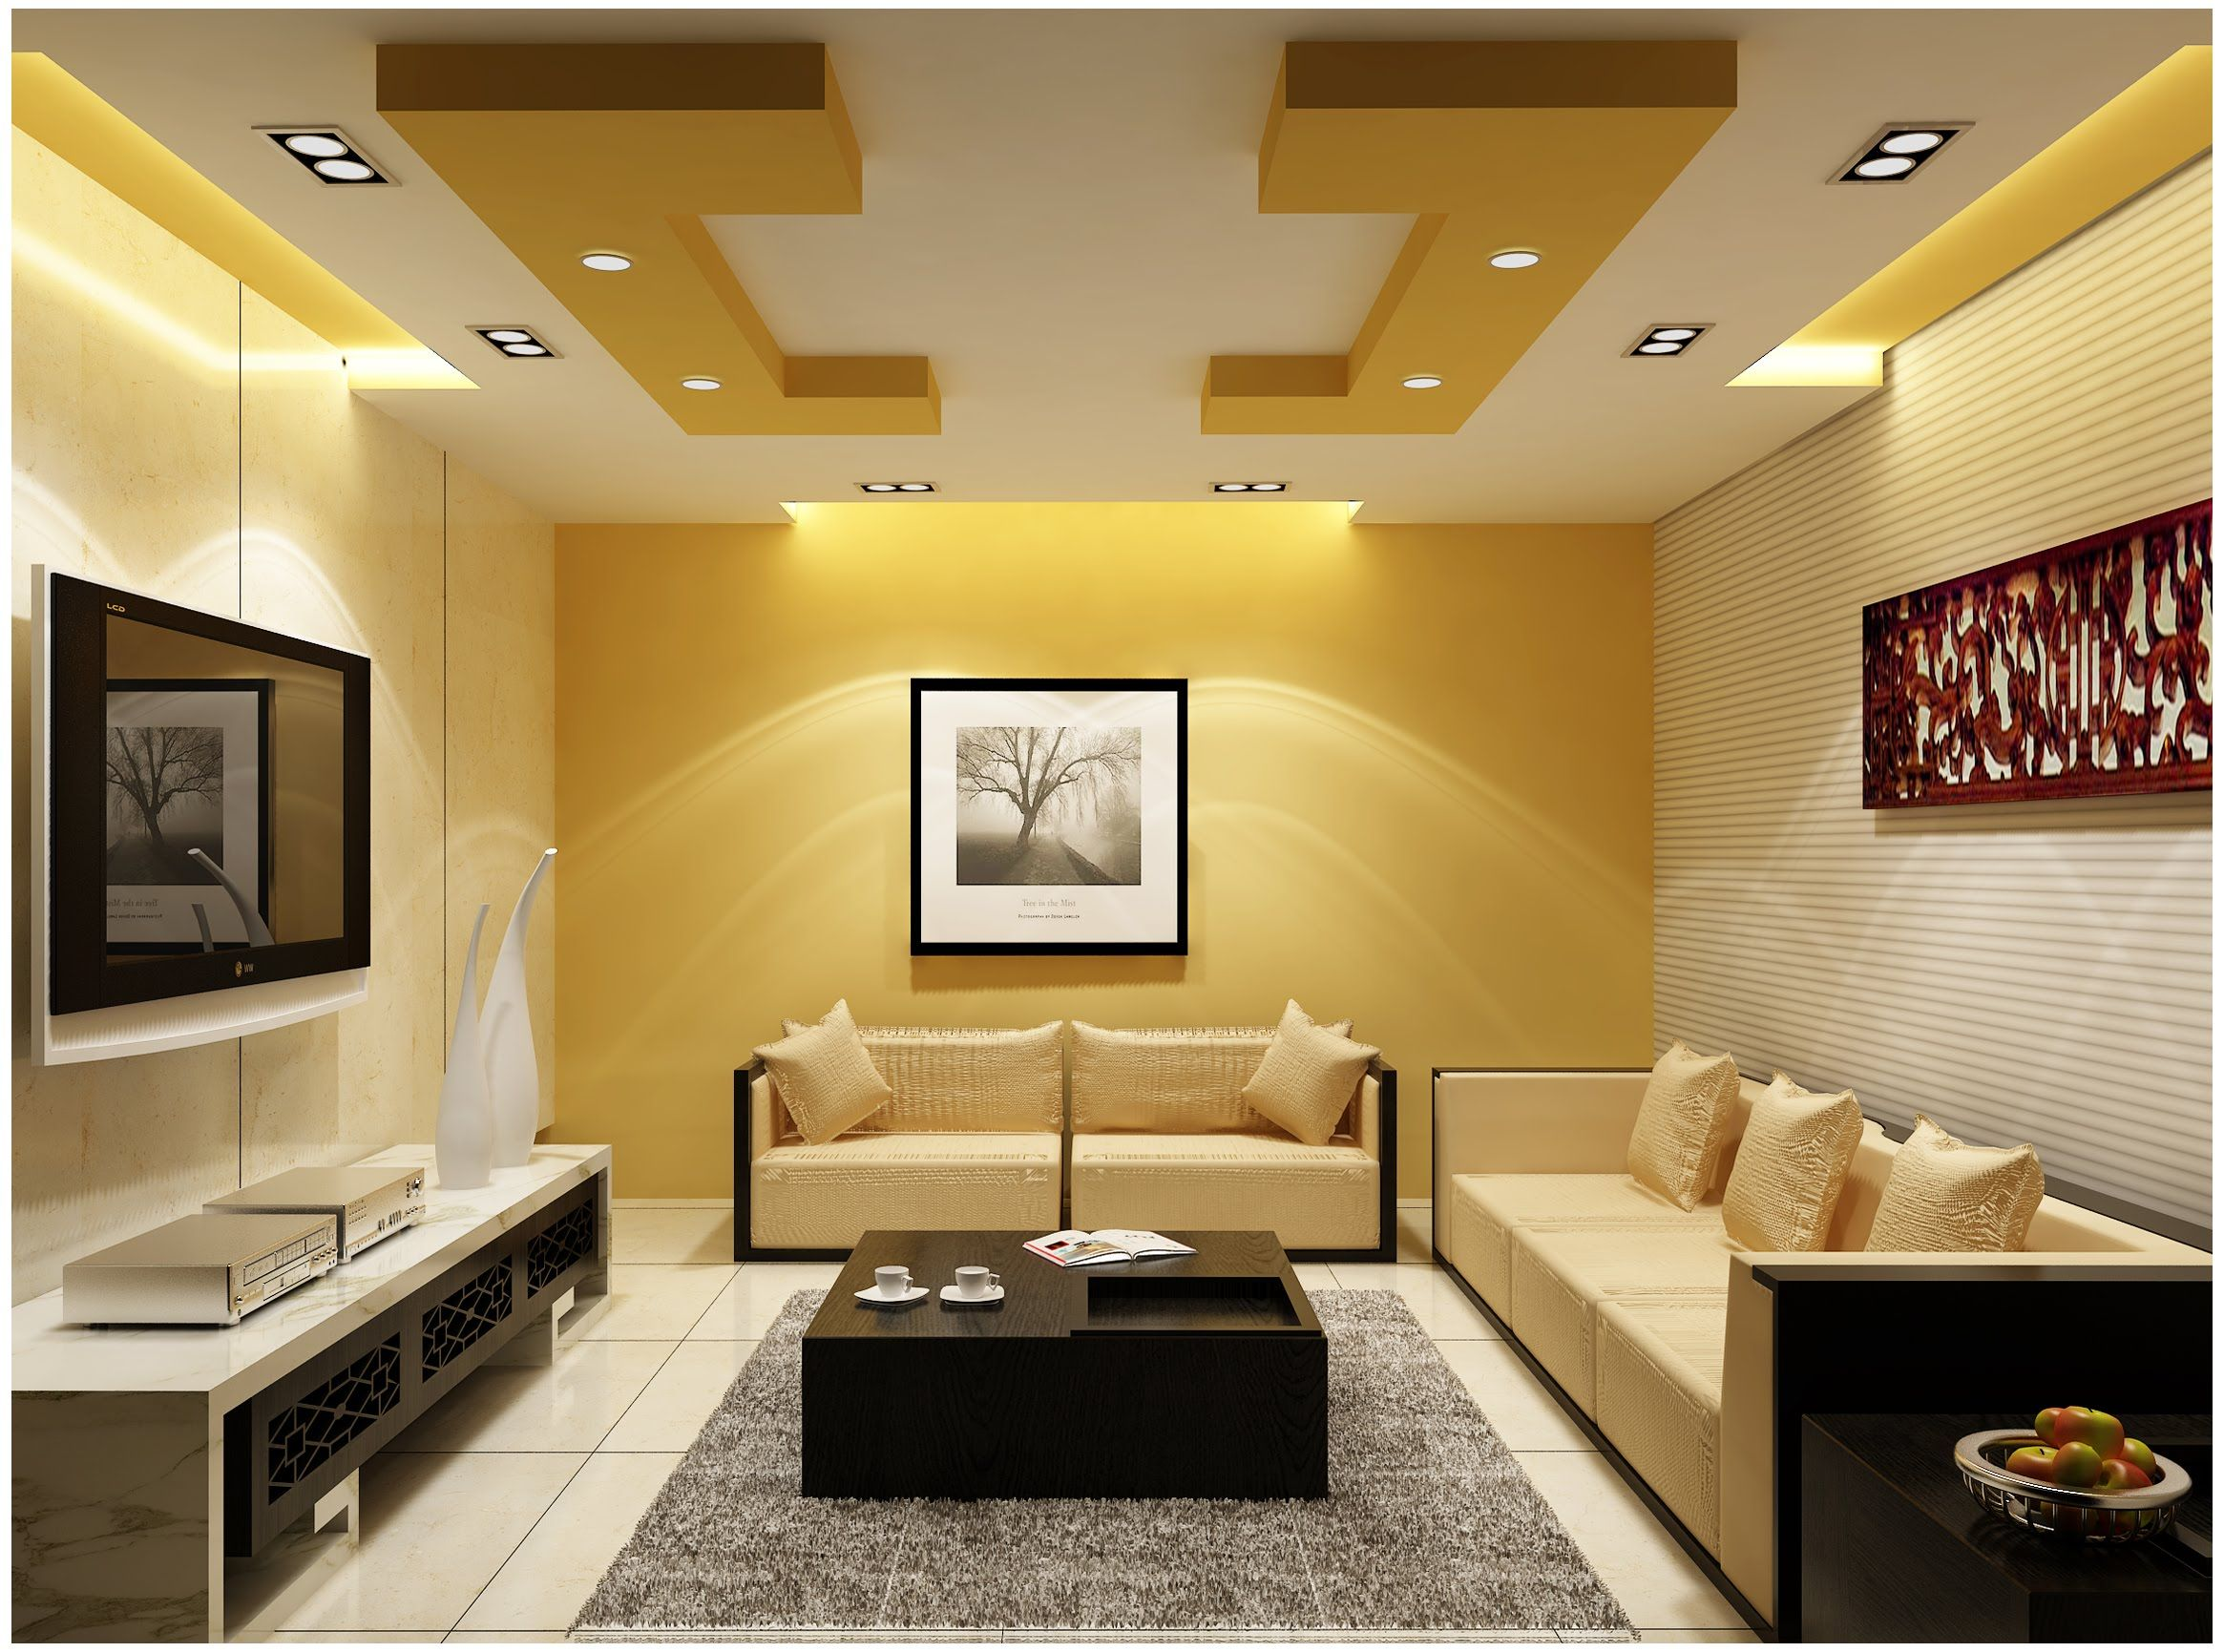 Ceiling designs for your living room luxury ceiling - Simple ceiling design for living room ...